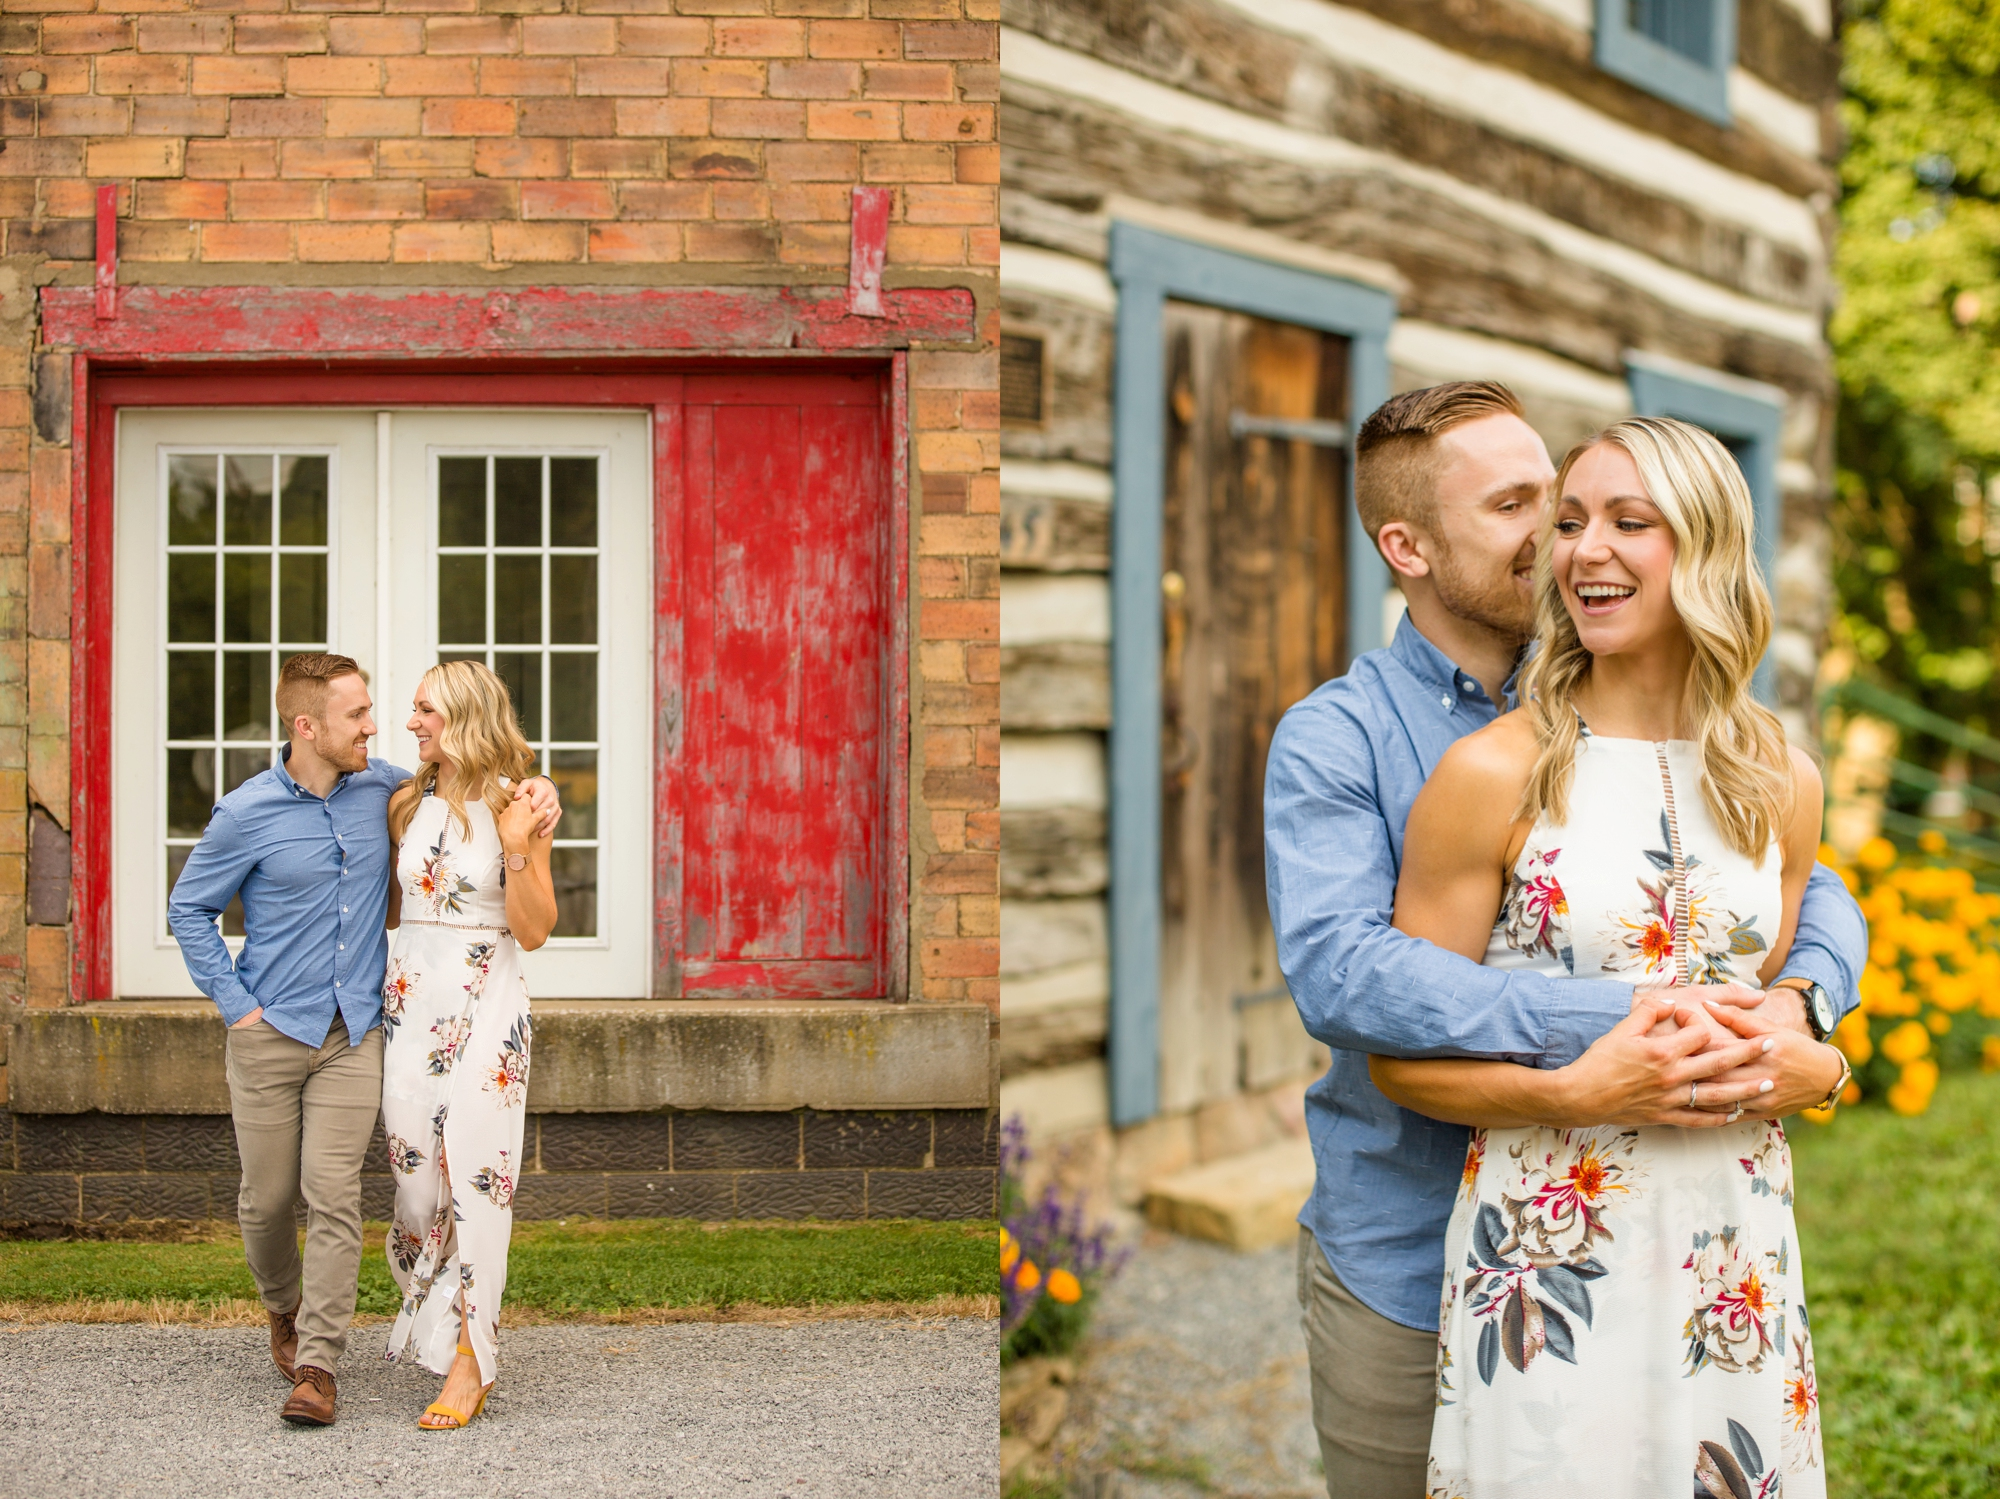 pittsburgh engagement photographer, pittsburgh wedding photographer, soergels orchard engagement photos, fall engagement session ideas, historic harmony engagement photos